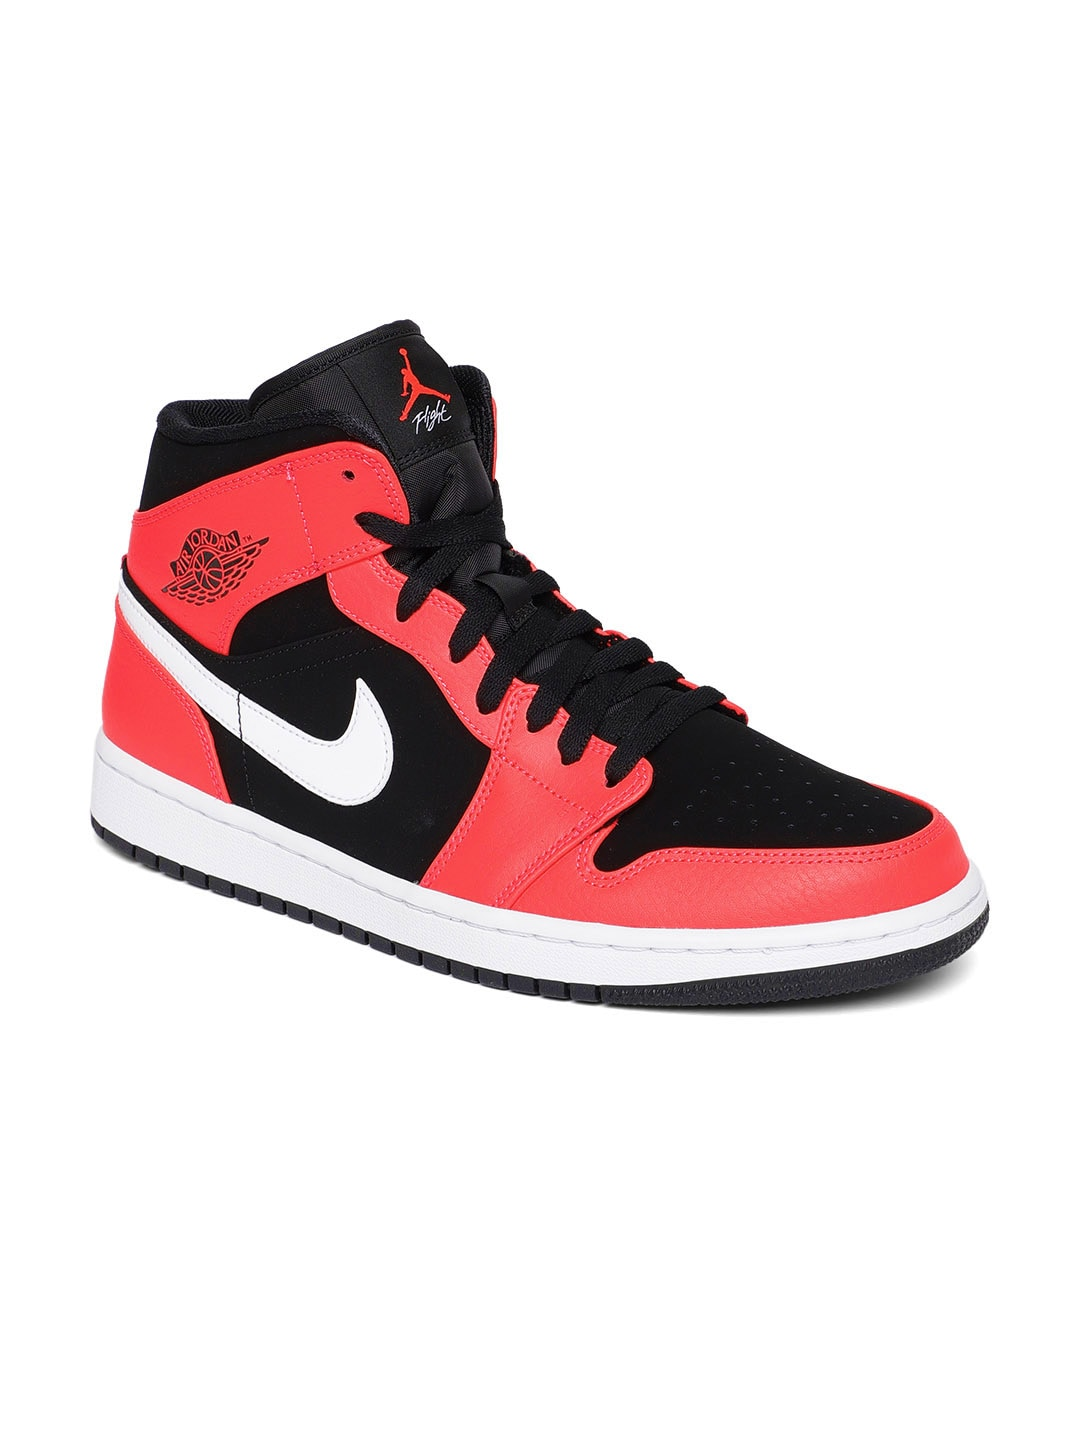 bac4398d610a Jordan Exclusive Jordan Products Online in India - Myntra